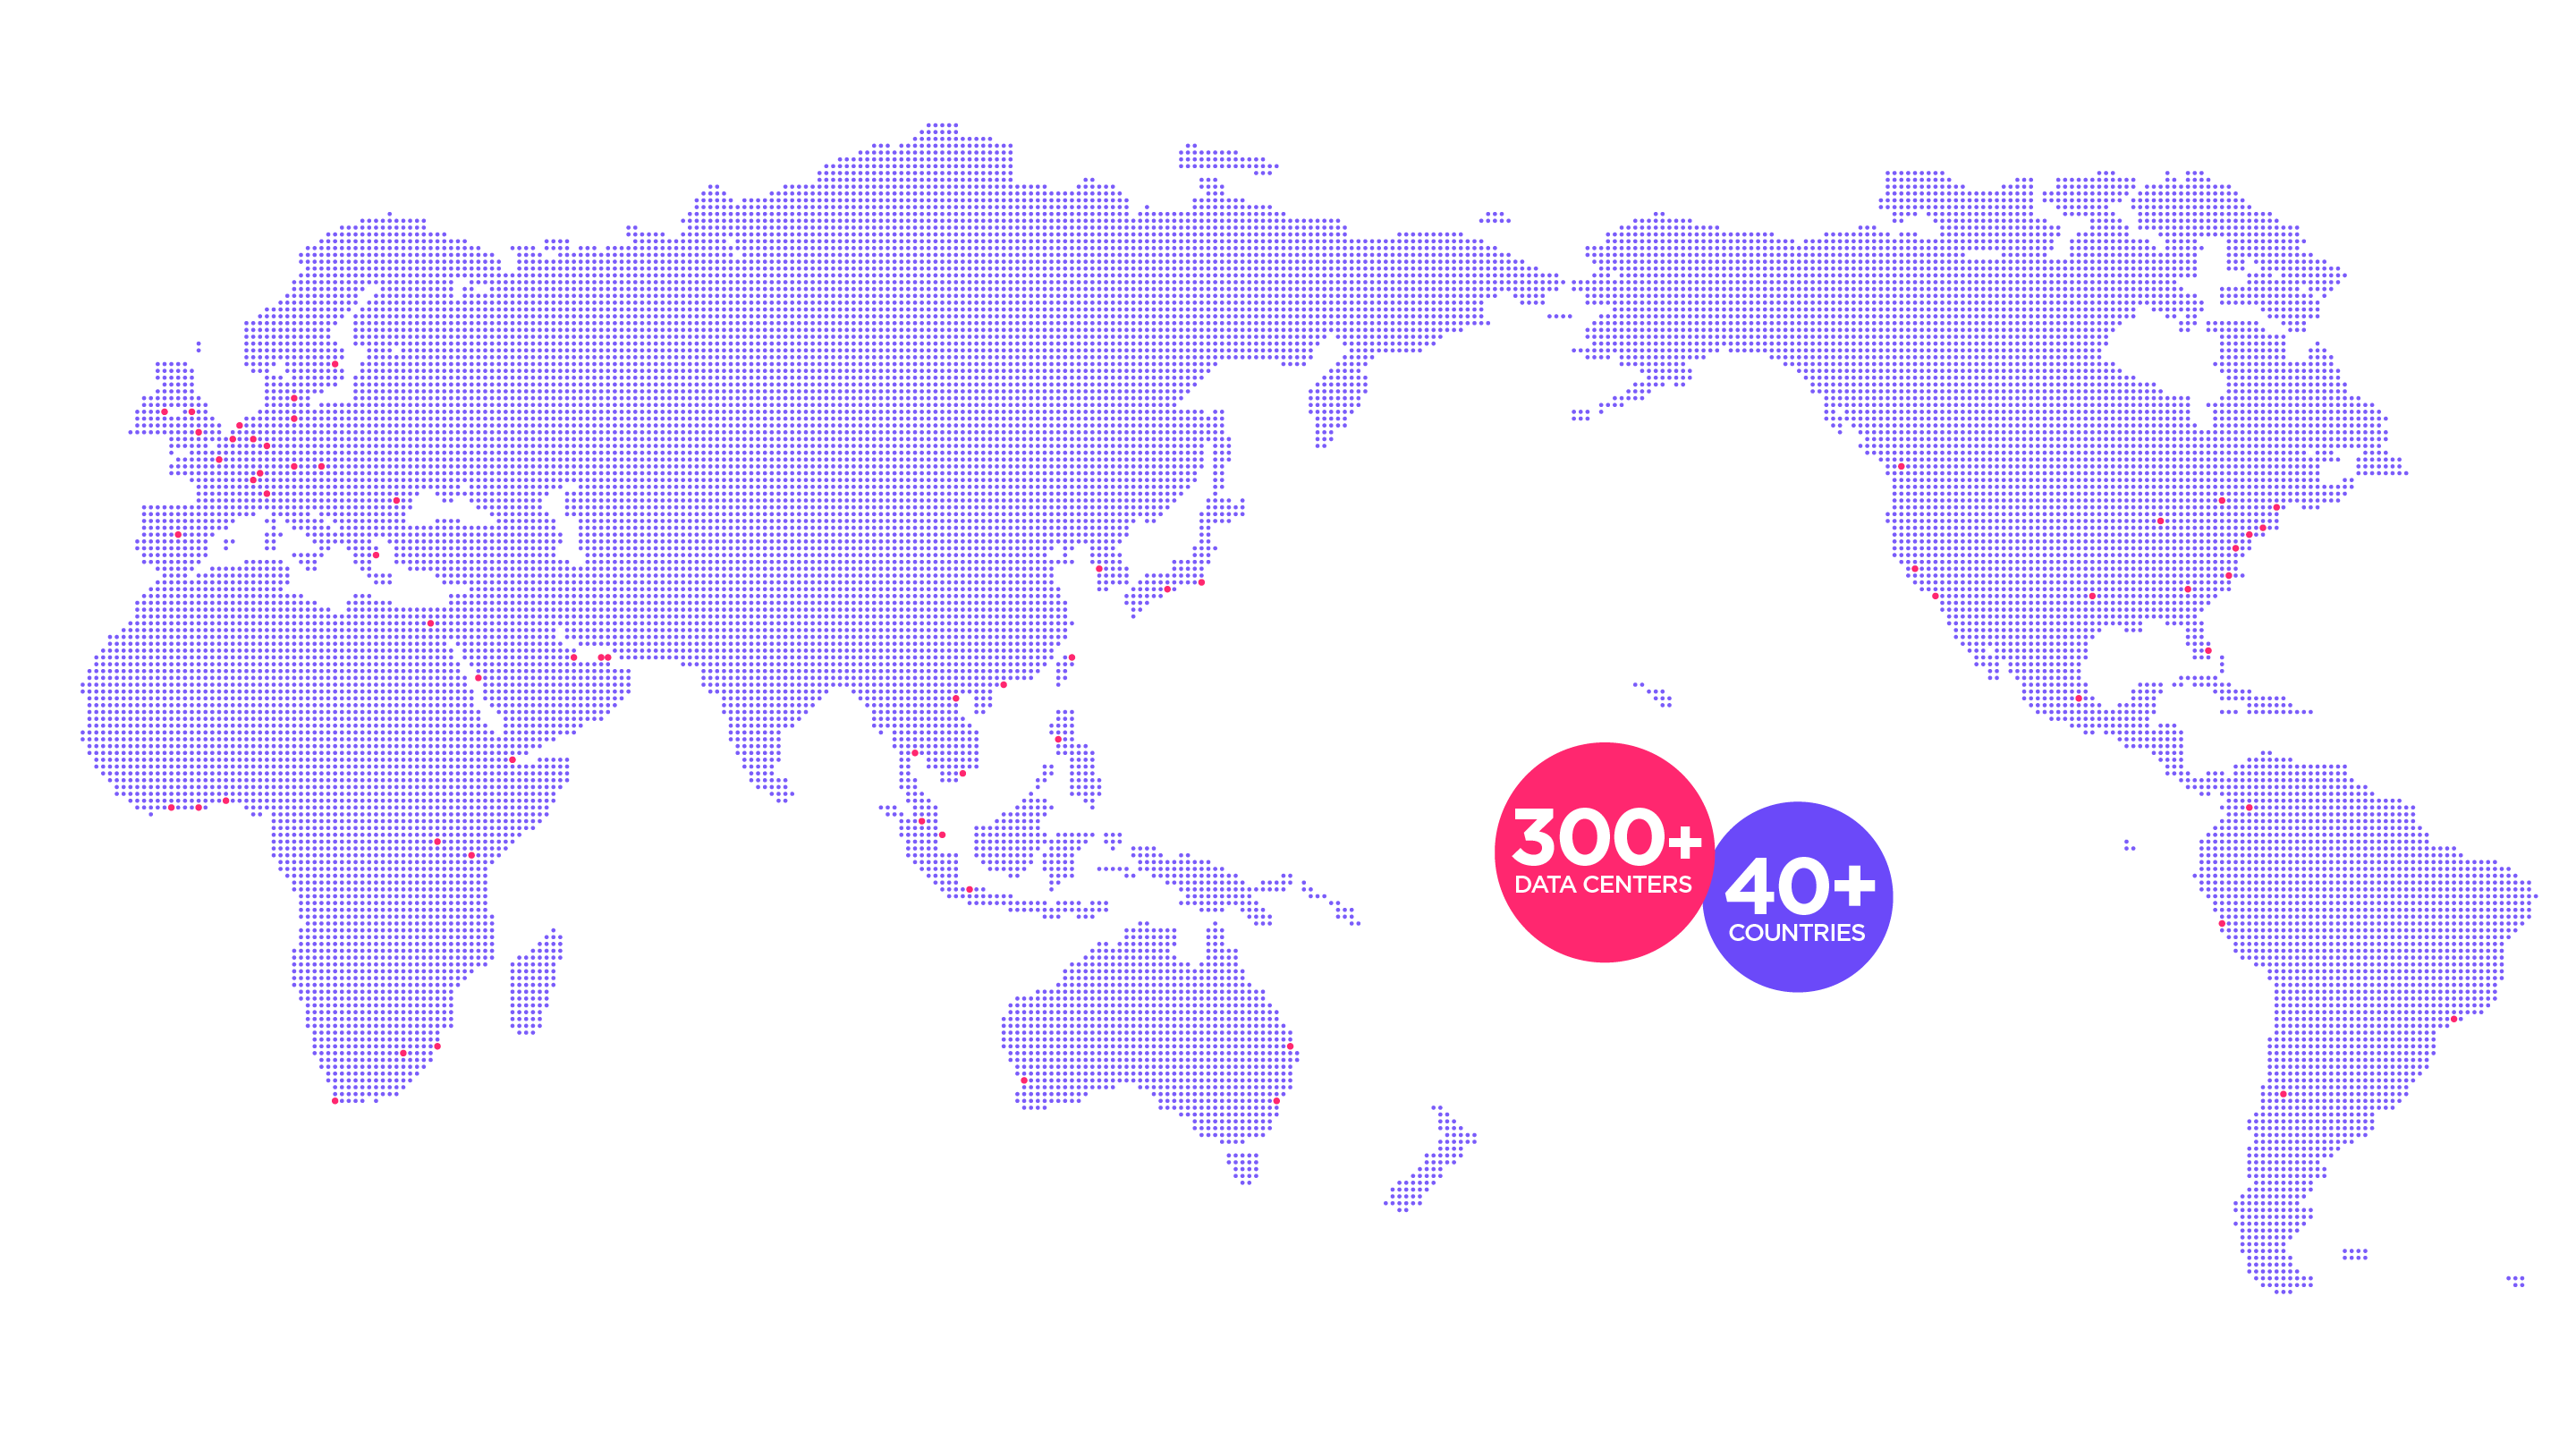 Global map displaying Console Connect PoP locations